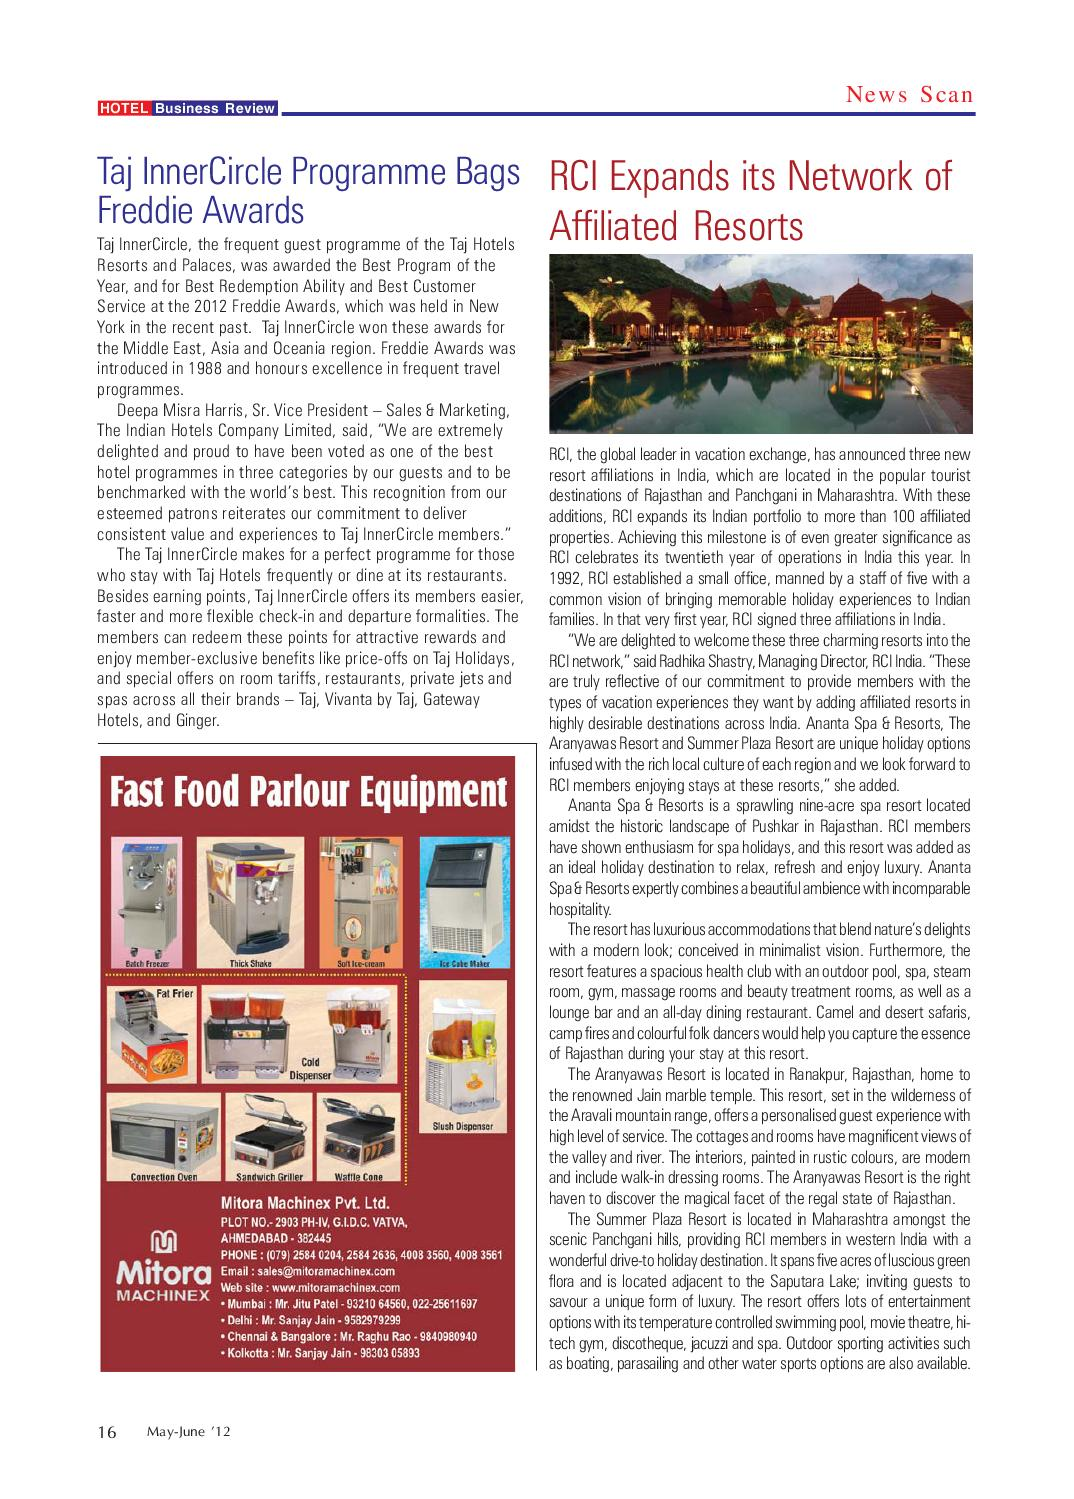 Hotel Business Review by Hammer Publishers Pvt  Ltd - issuu